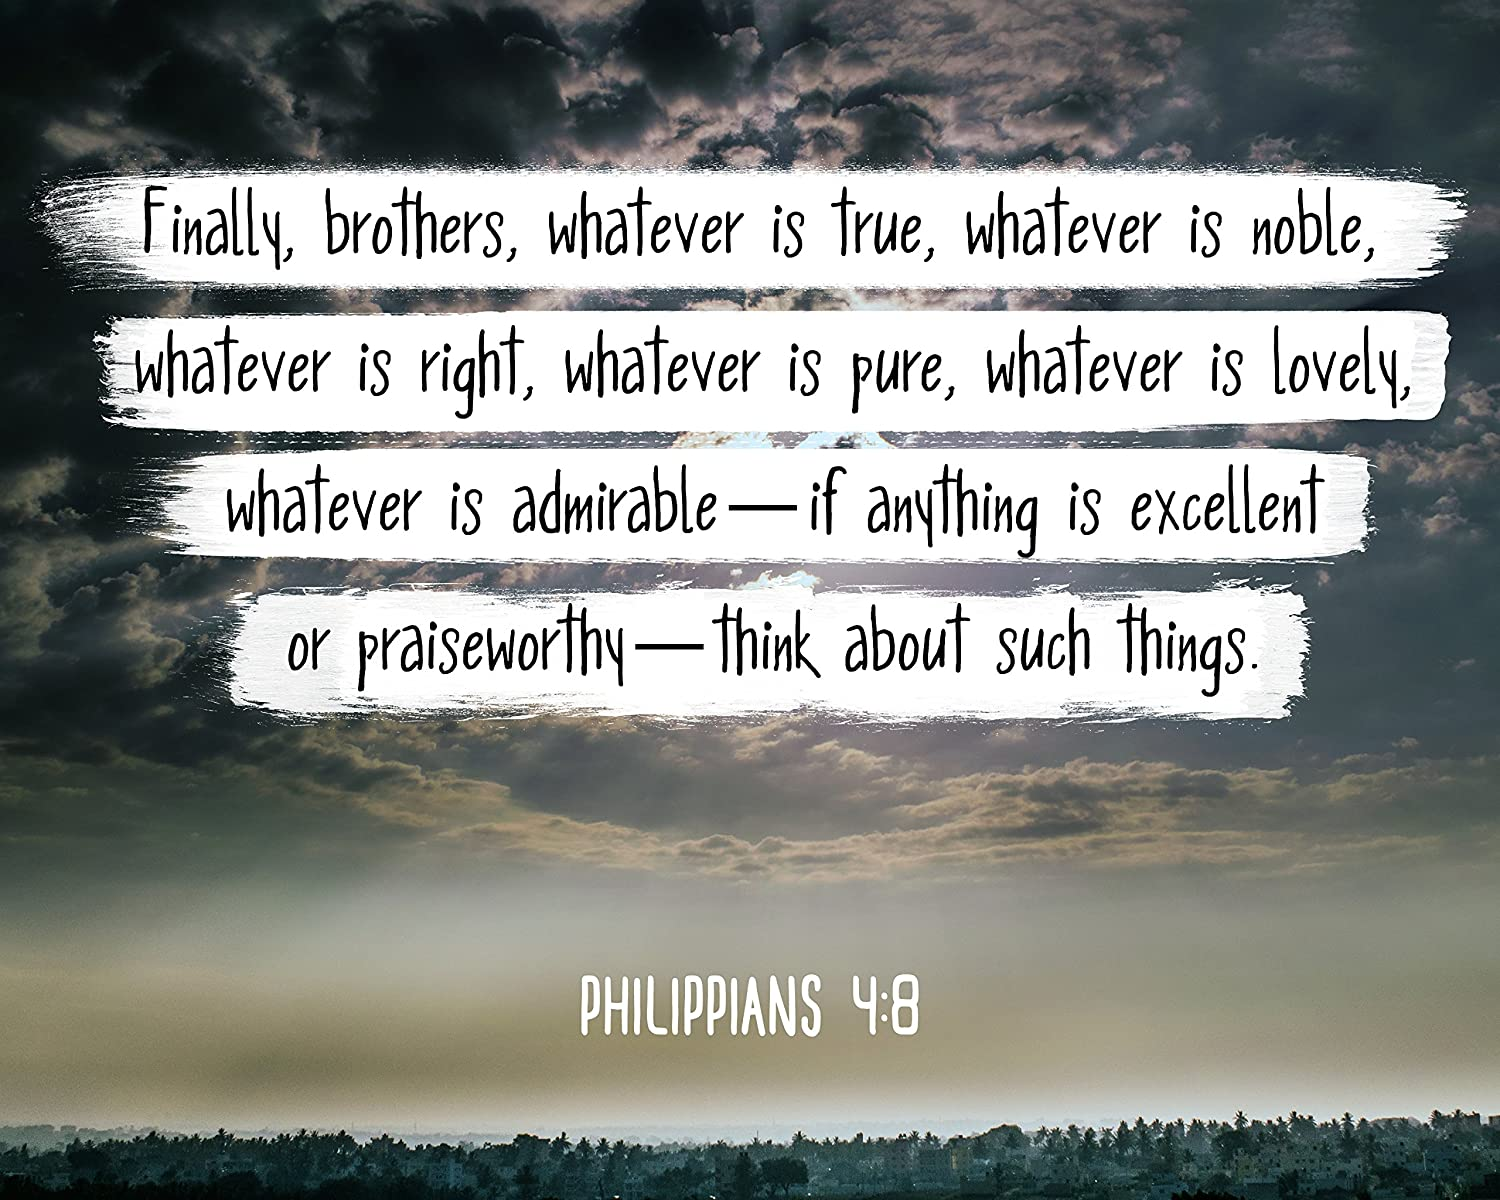 Amazon.com: WeSellPhotos Bible Verse Wall Art Finally, Brothers, Whatever  is True. Phil 4:8 Christian Poster Framed Picture Wall Decor Print |  Spiritual Inspirational Verses and Quotes (13x19 Unframed Poster): Posters  & Prints